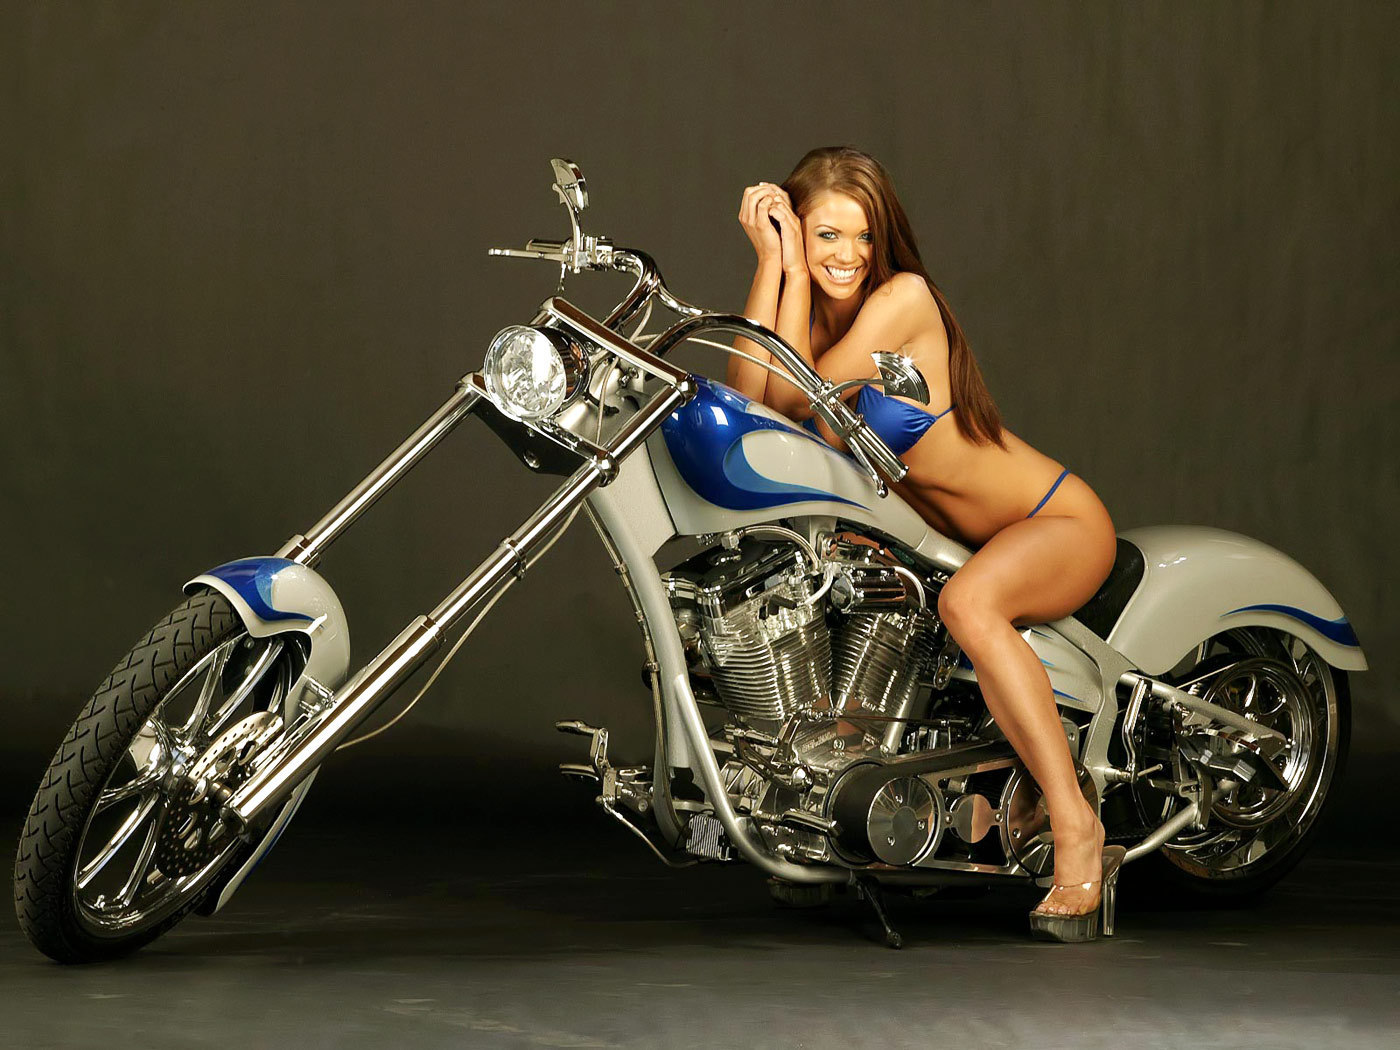 CHOPPER BABE - motorcycles wallpaper